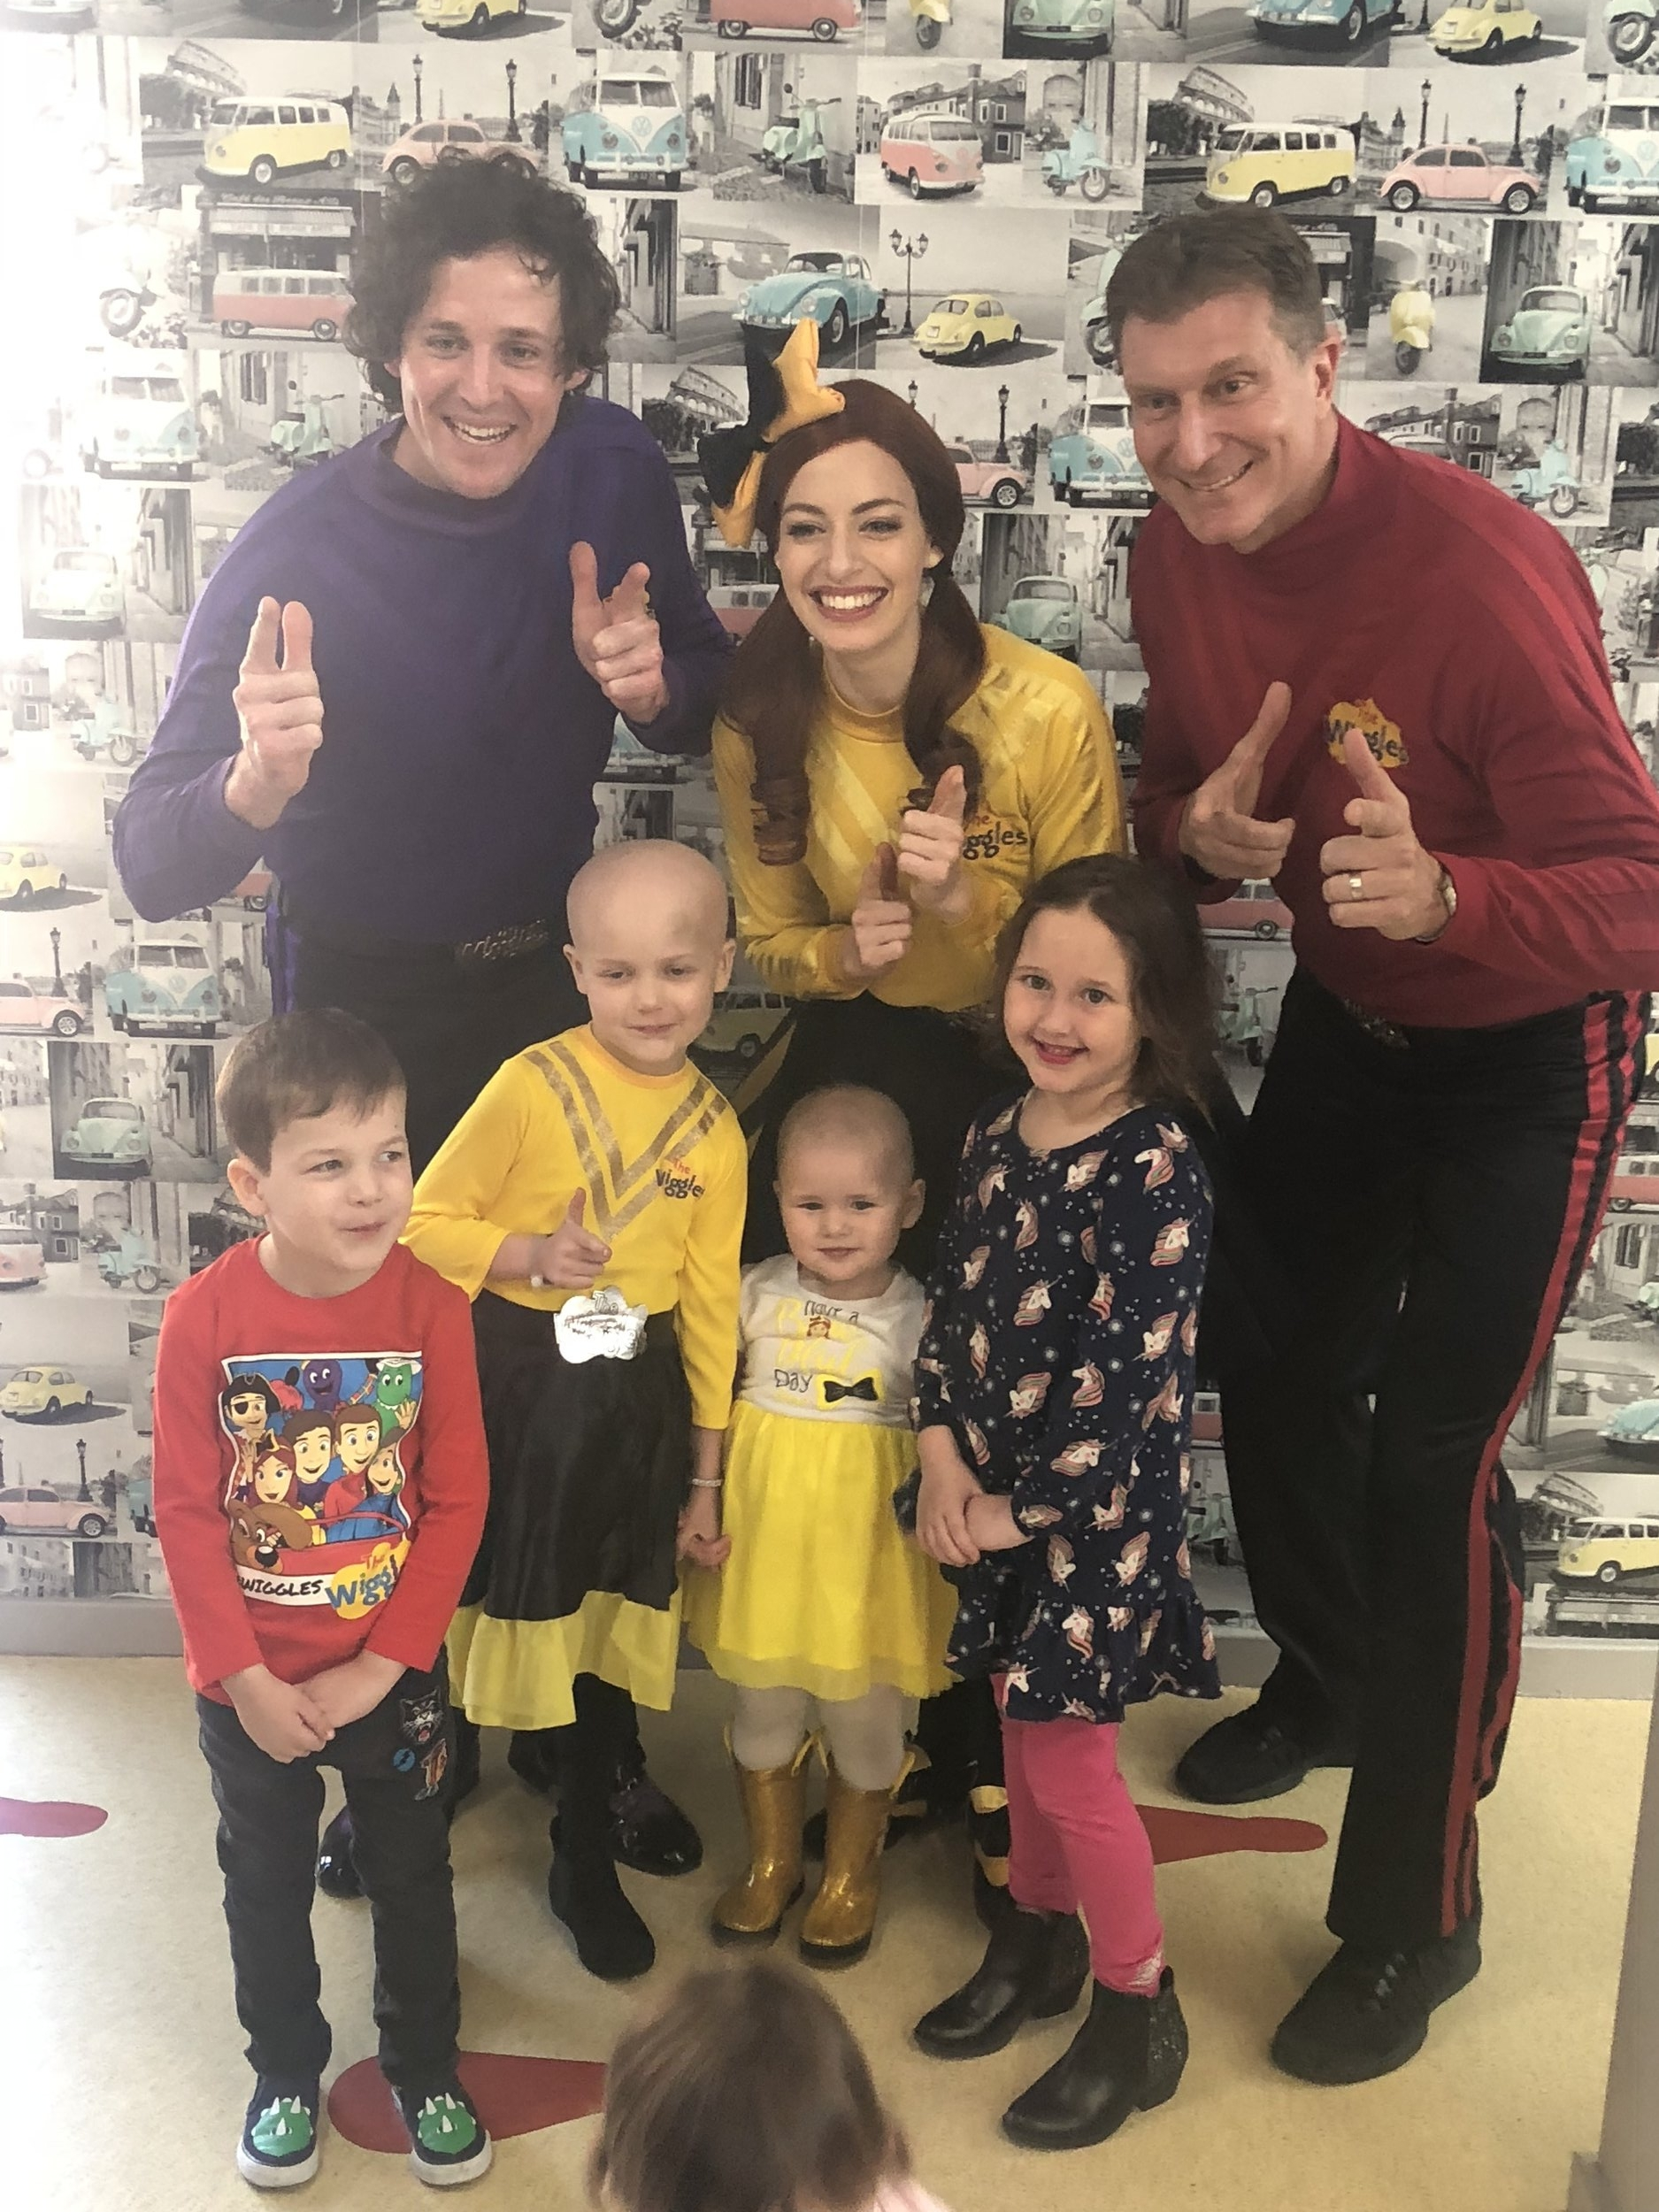 Image 3 The Wiggles with children.jpg